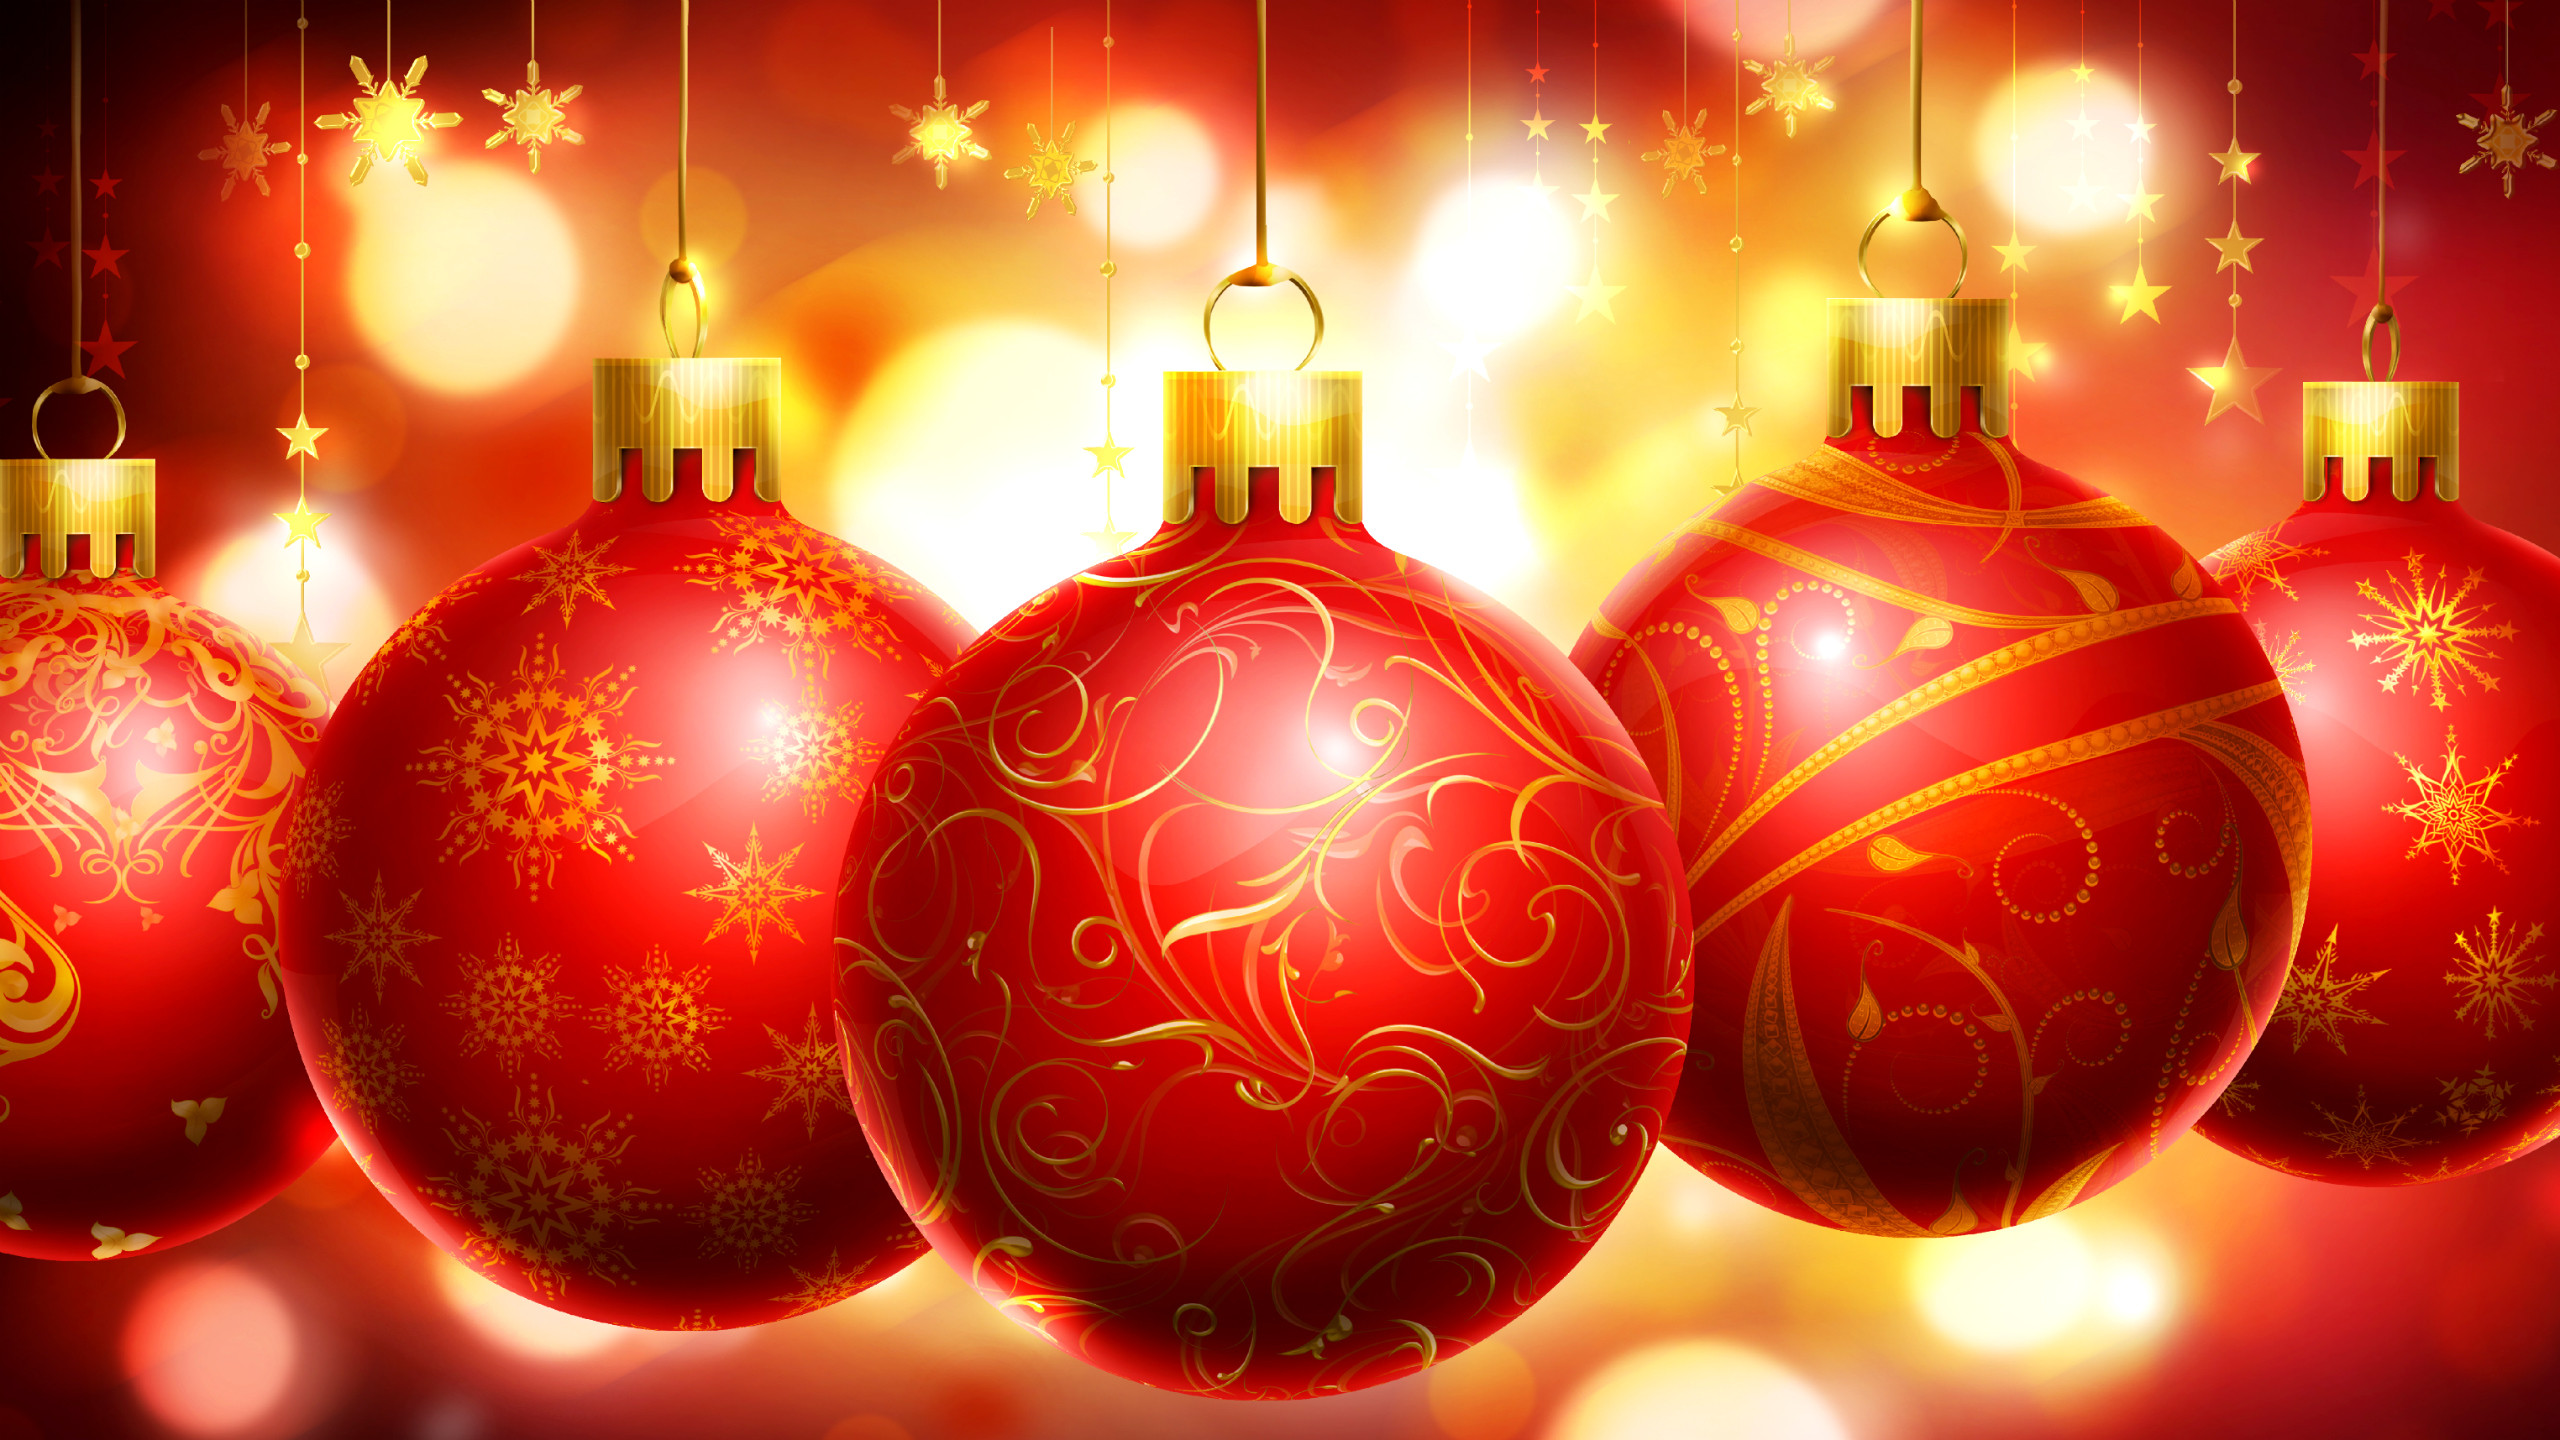 Christmas HD Wallpapers (80+ Images